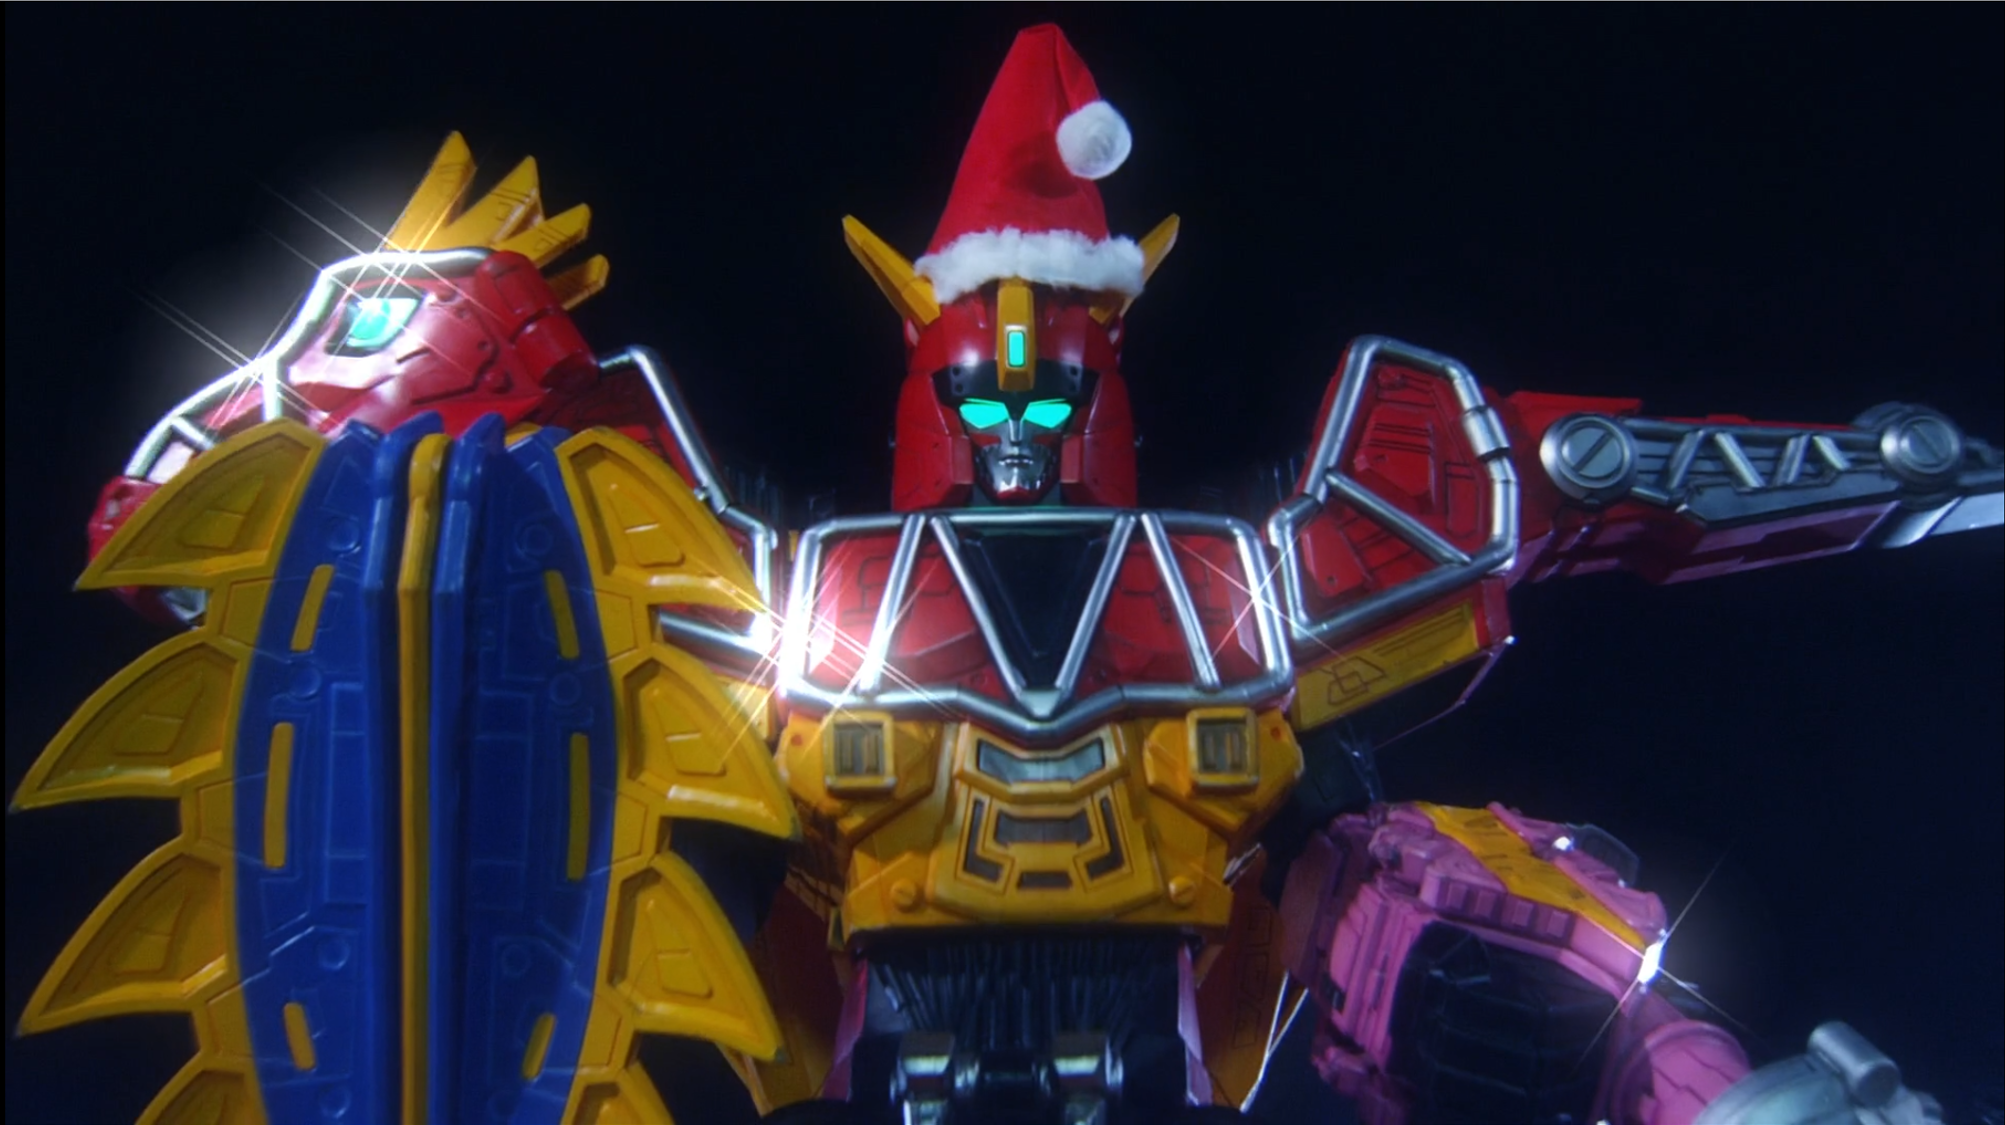 File:KyoryuzinChristmas.png